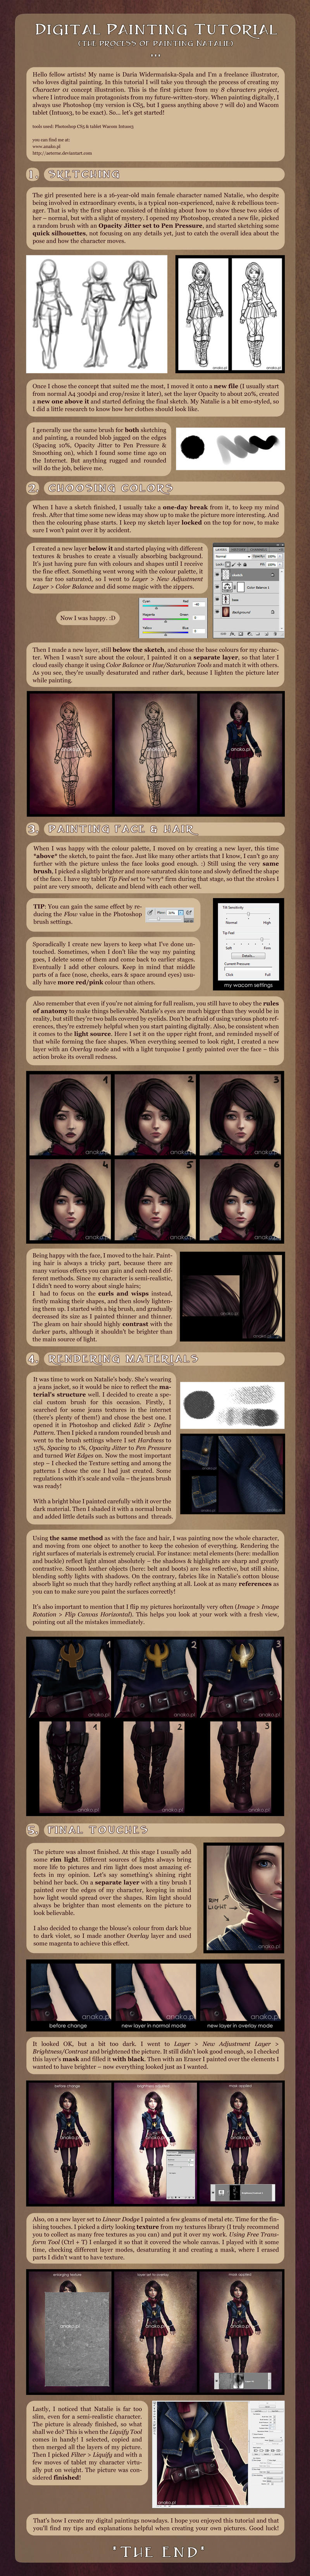 Digital Painting Tutorial by Anako-ART